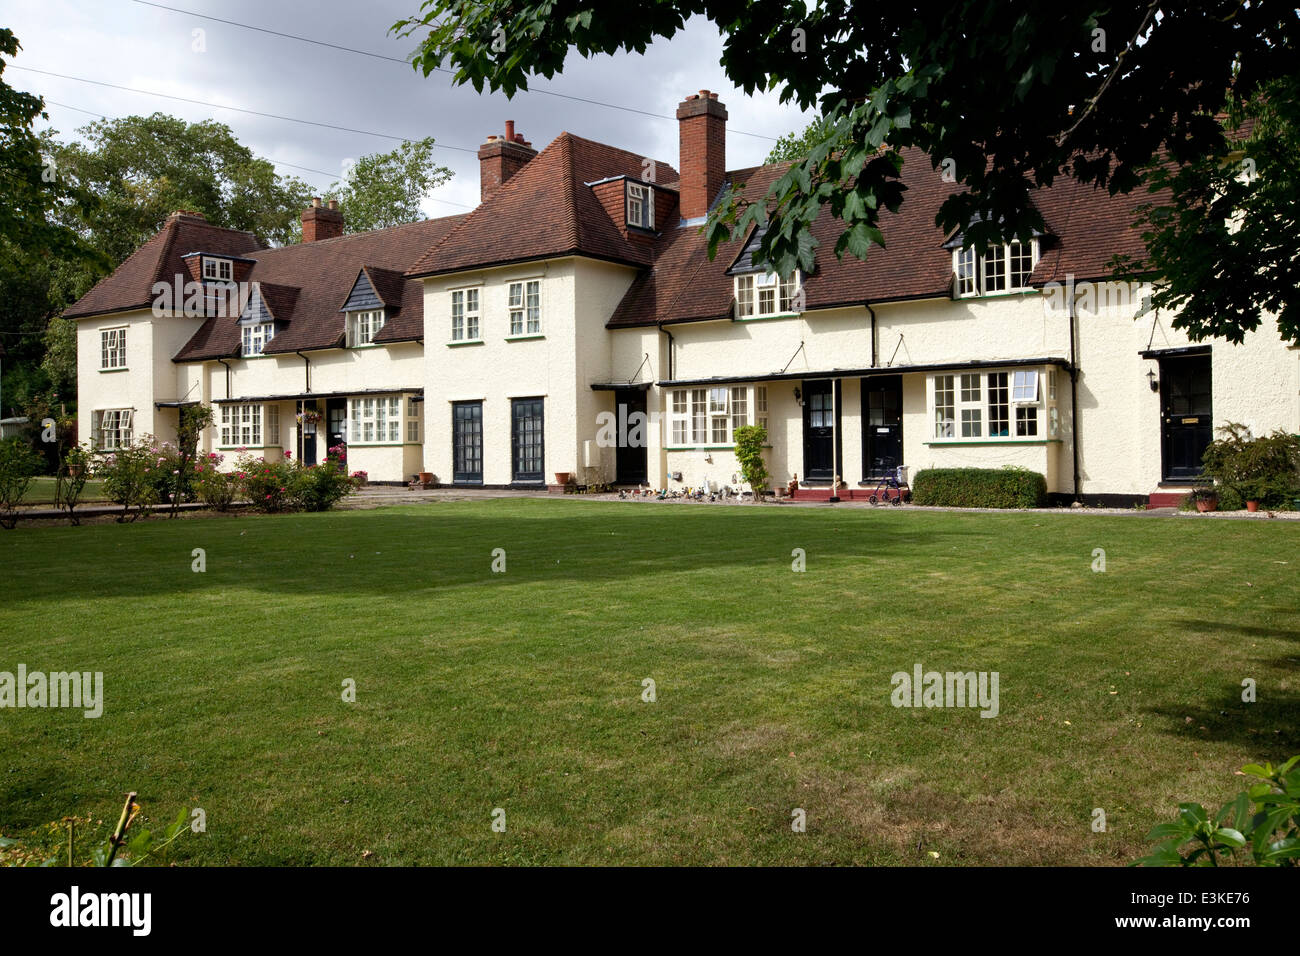 Arts And Crafts Period Houses In Letchworth The Worlds First Garden City Designed By Ebenezer Howard UK